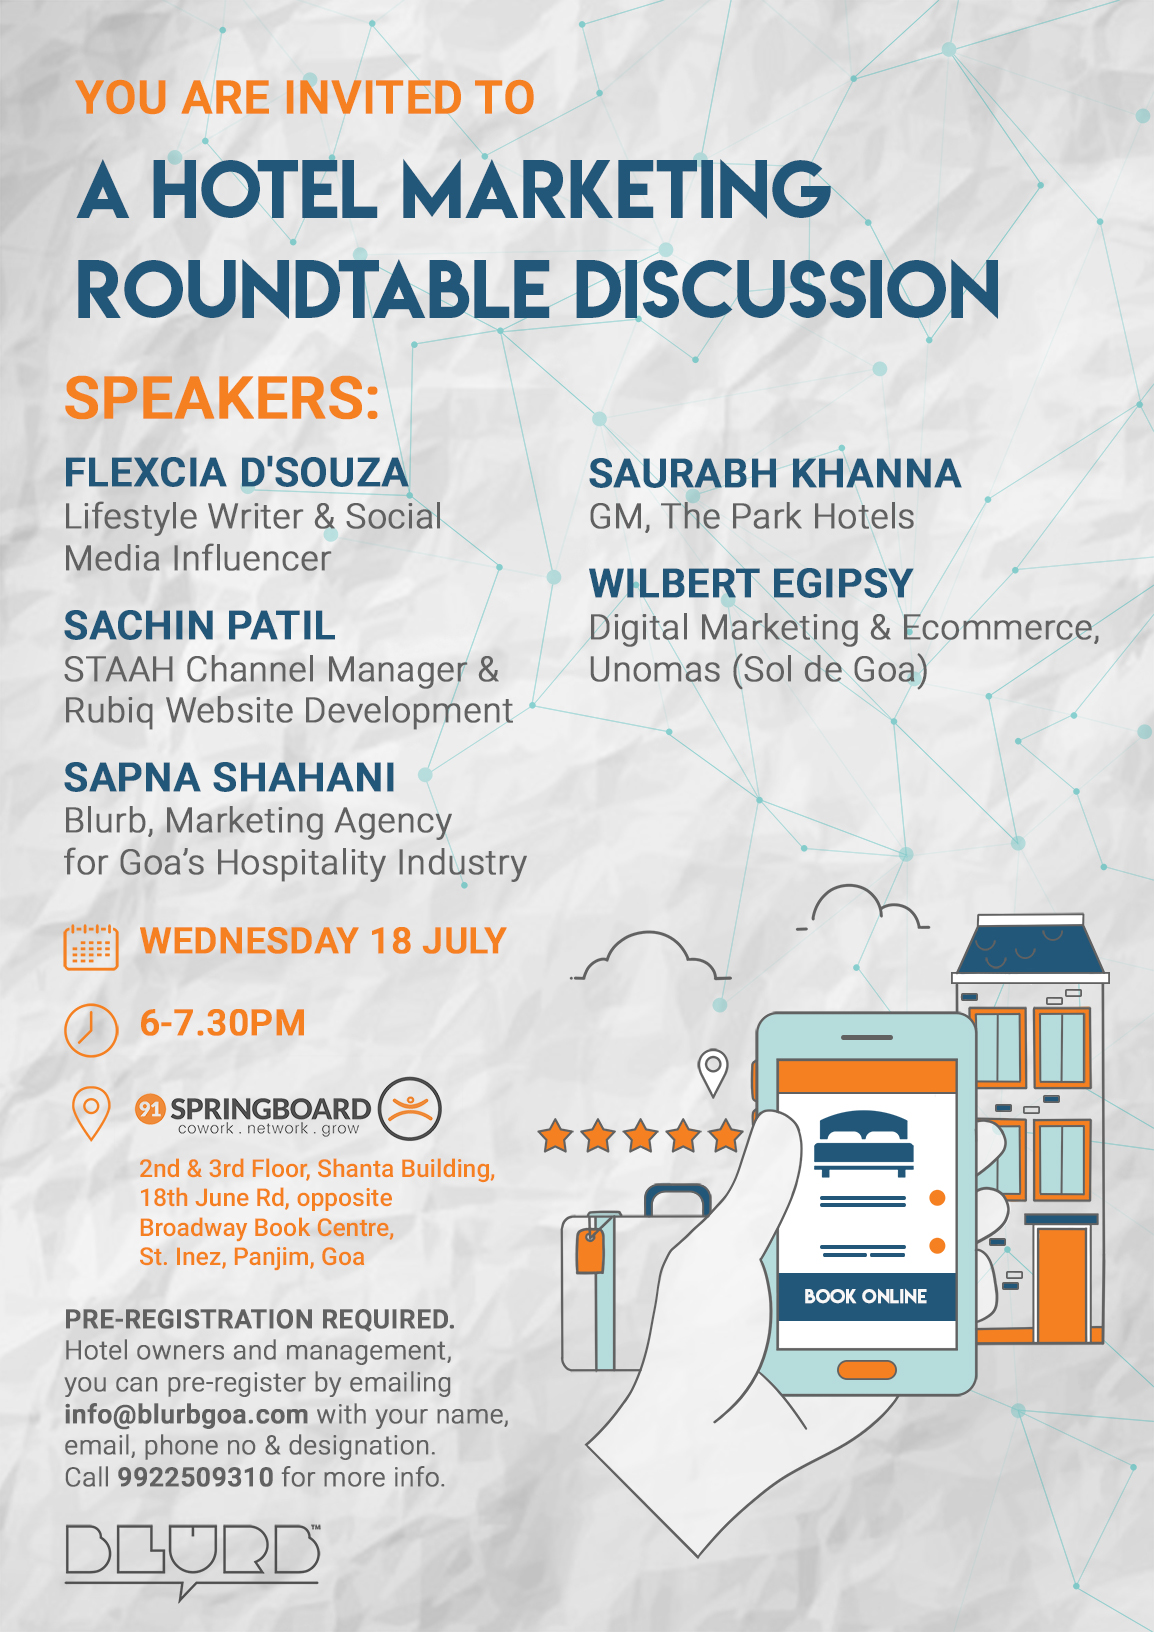 Blurb Hosts Hotel Marketing Round Table Discussion in Goa